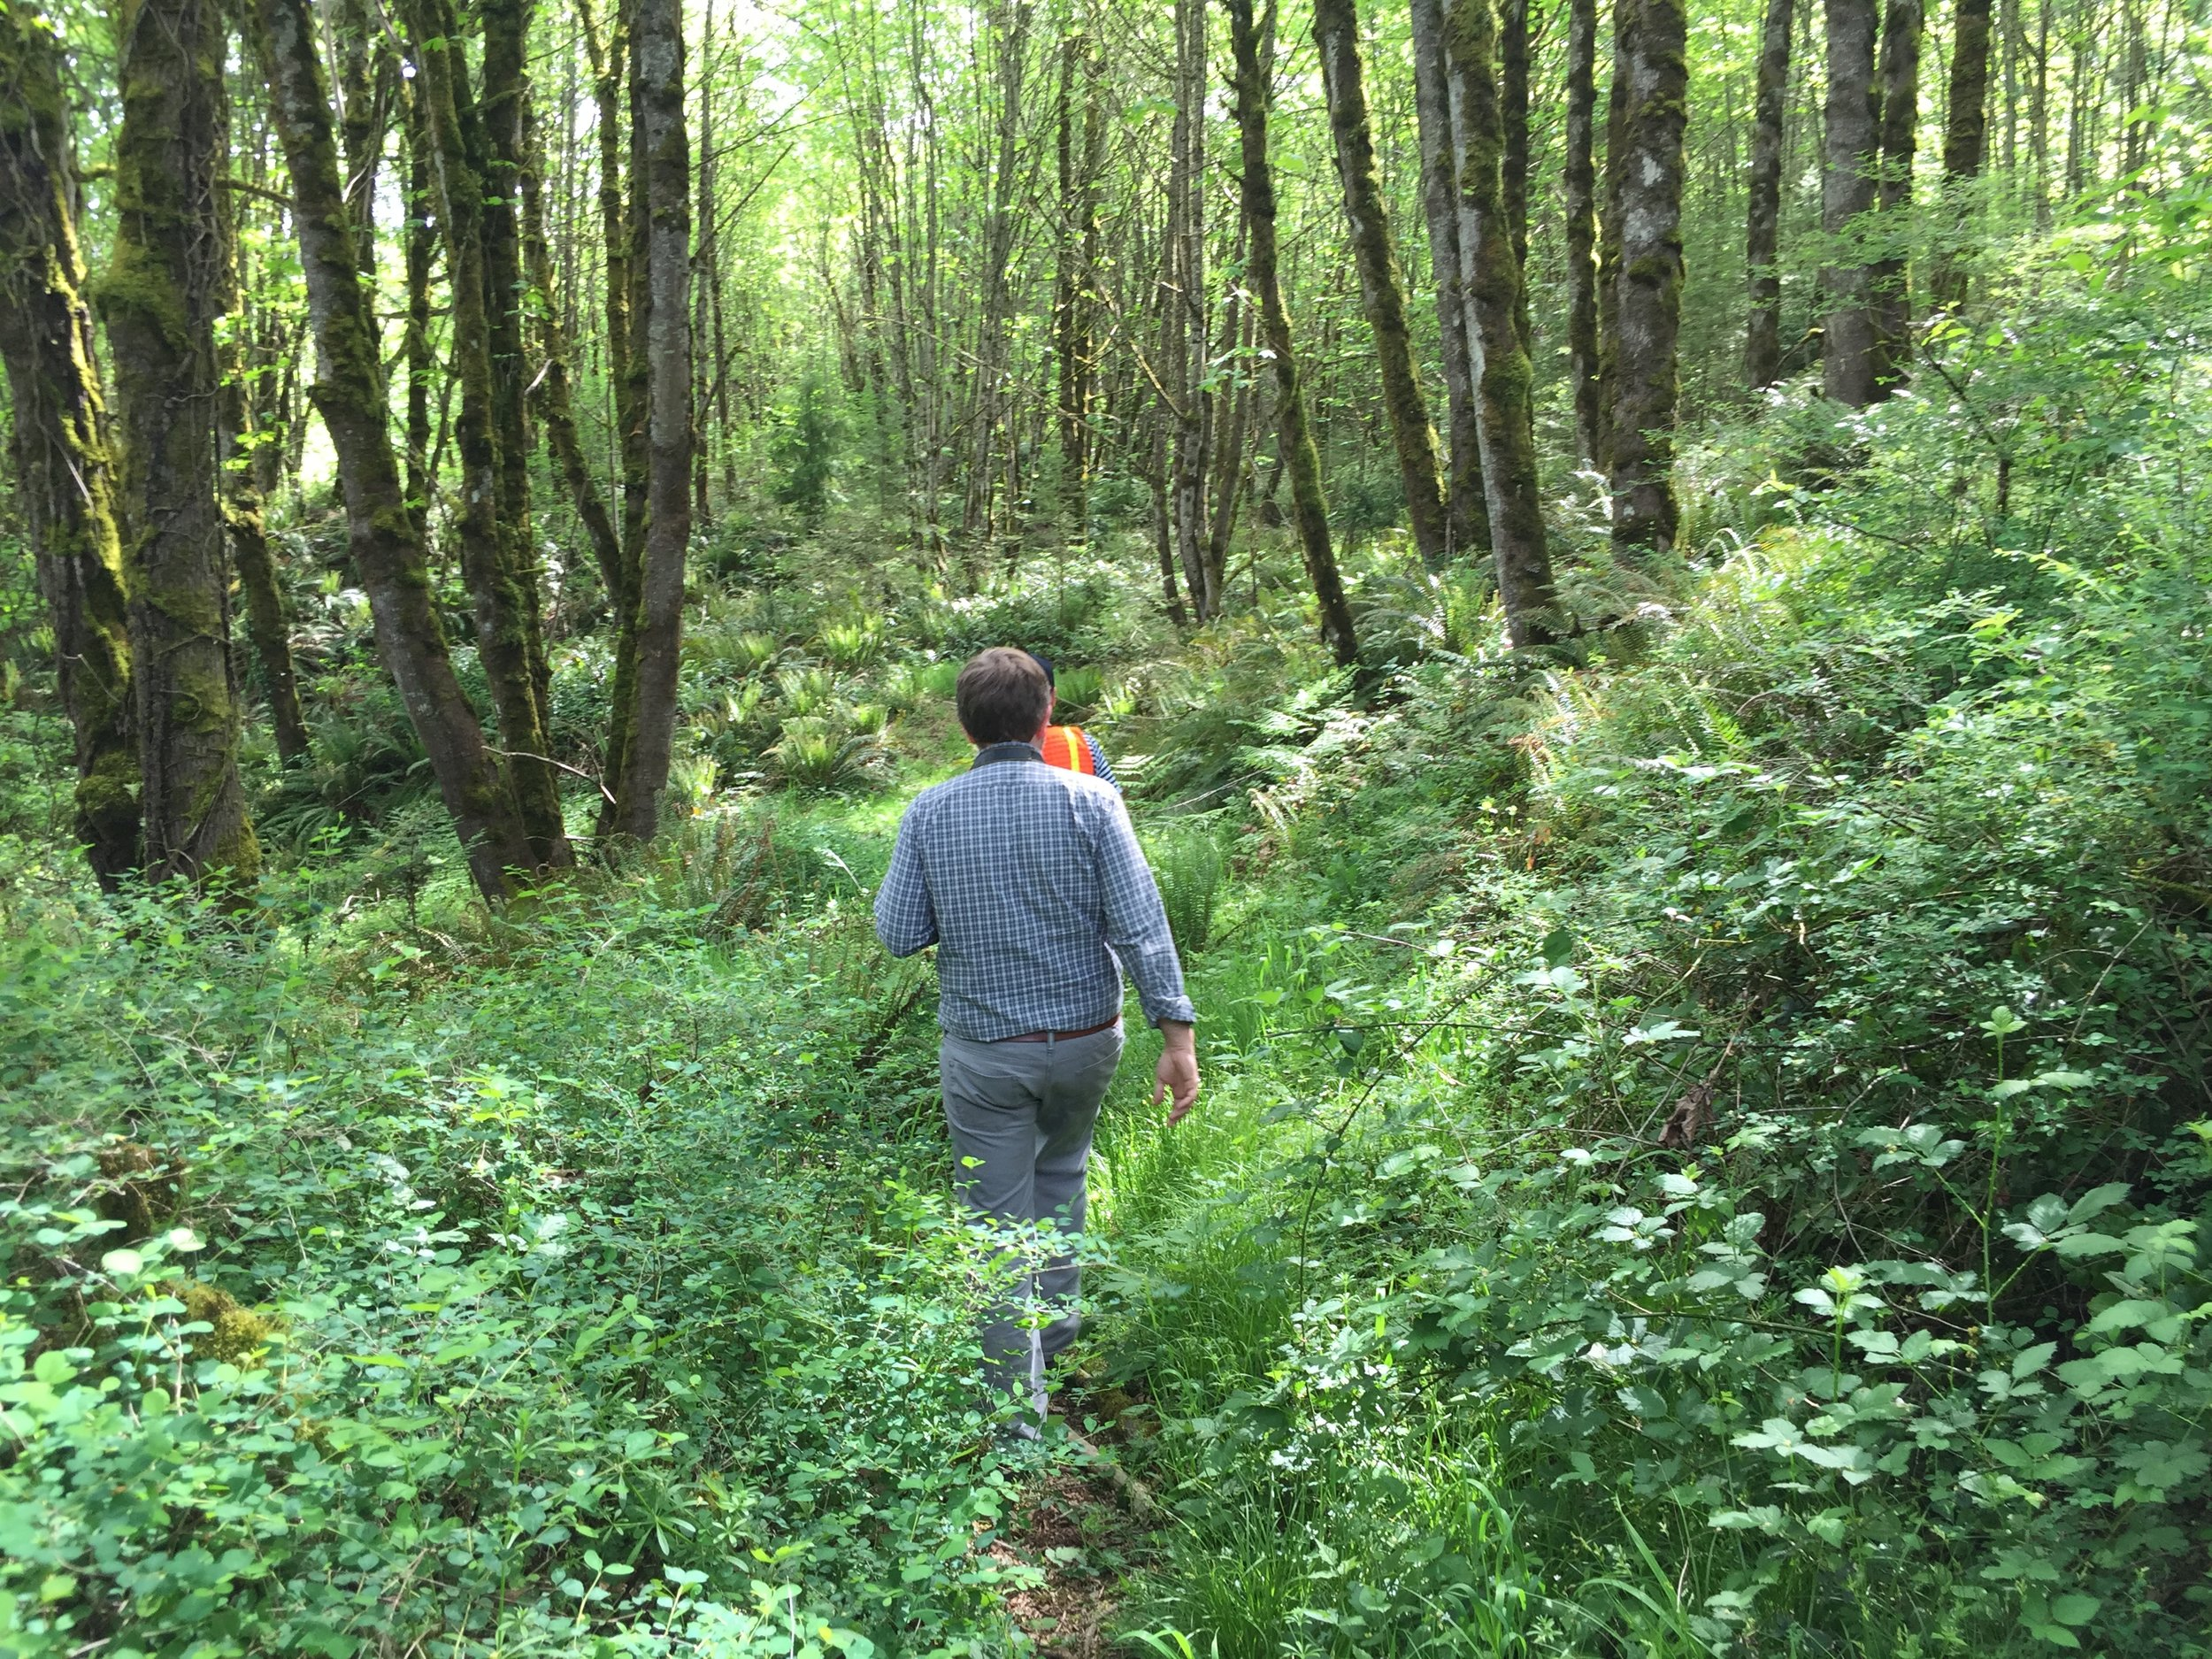 people using a trail in a shady forest at Newell creek canyon to access nature